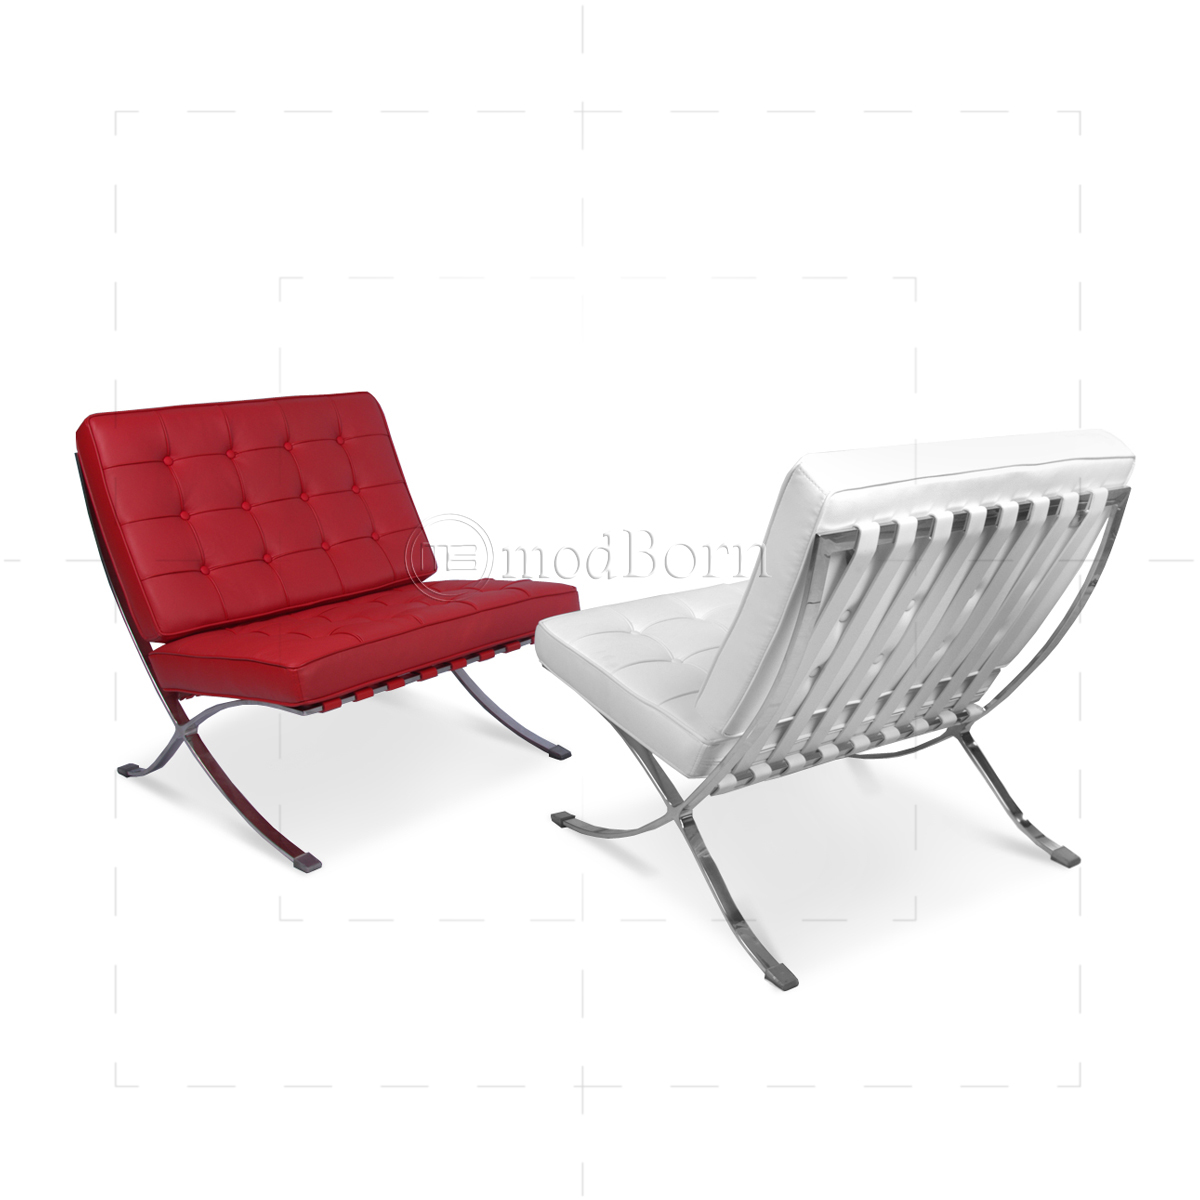 White Eames Lounge Chair : mies ven der rohe barcelonachair white and red 1200x1200 from www.tehroony.com size 1200 x 1200 jpeg 226kB